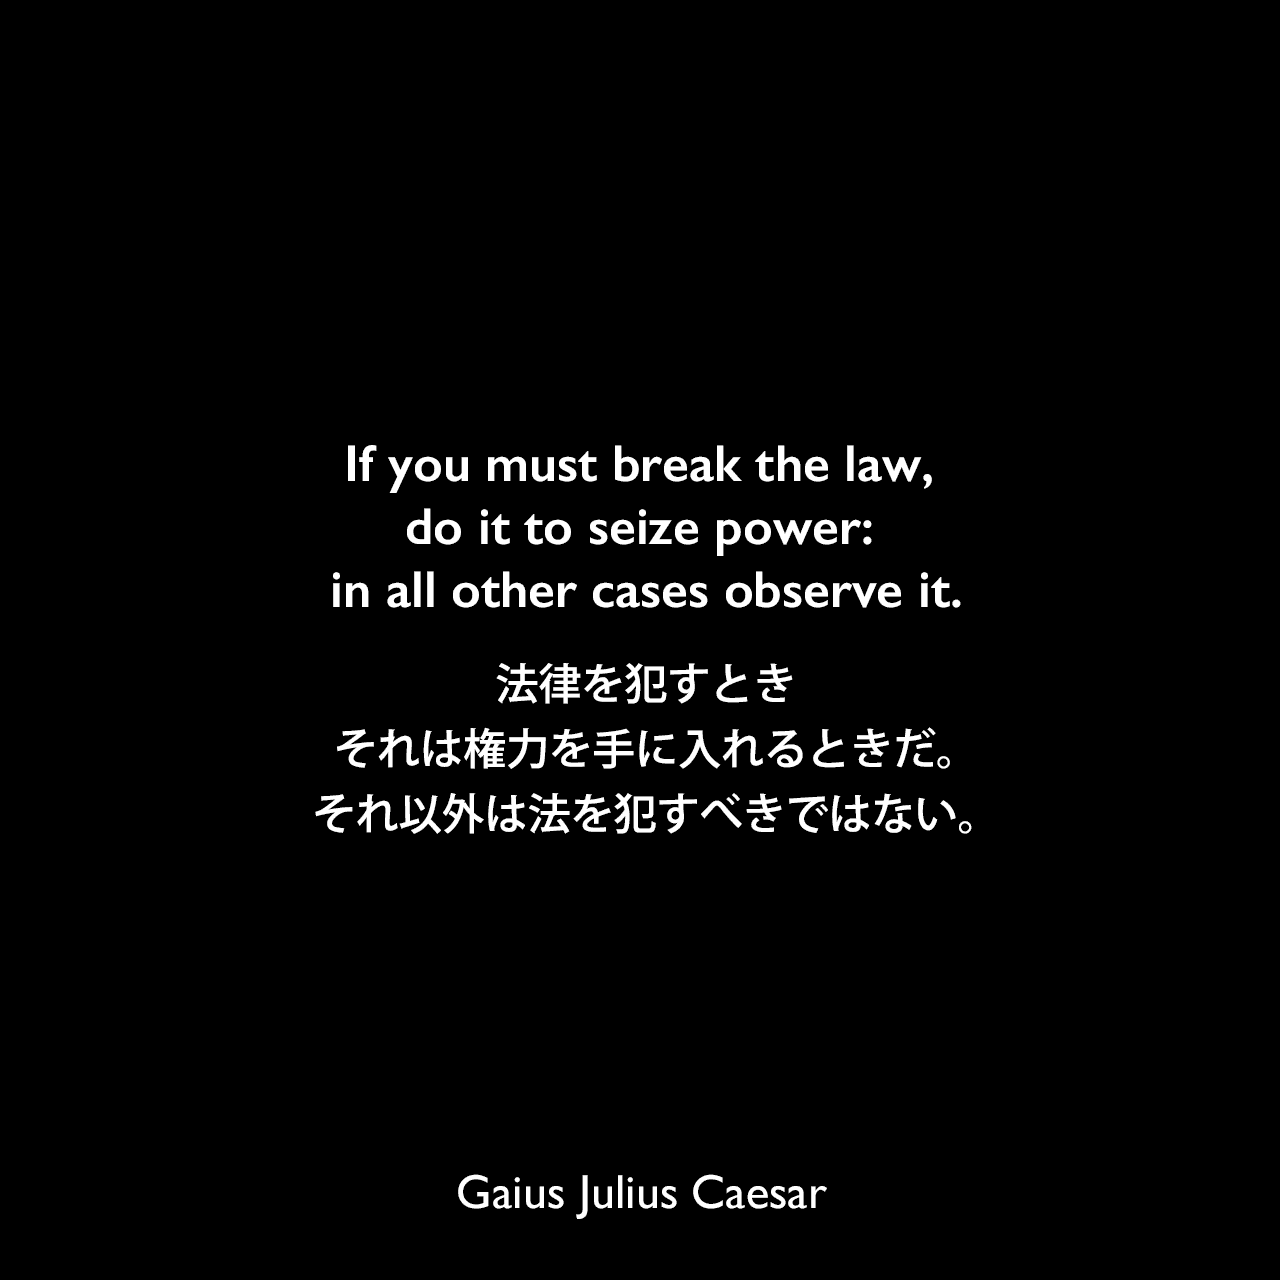 If you must break the law, do it to seize power: in all other cases observe it.法律を犯すとき、それは権力を手に入れるときだ。それ以外は法を犯すべきではない。Gaius Julius Caesar